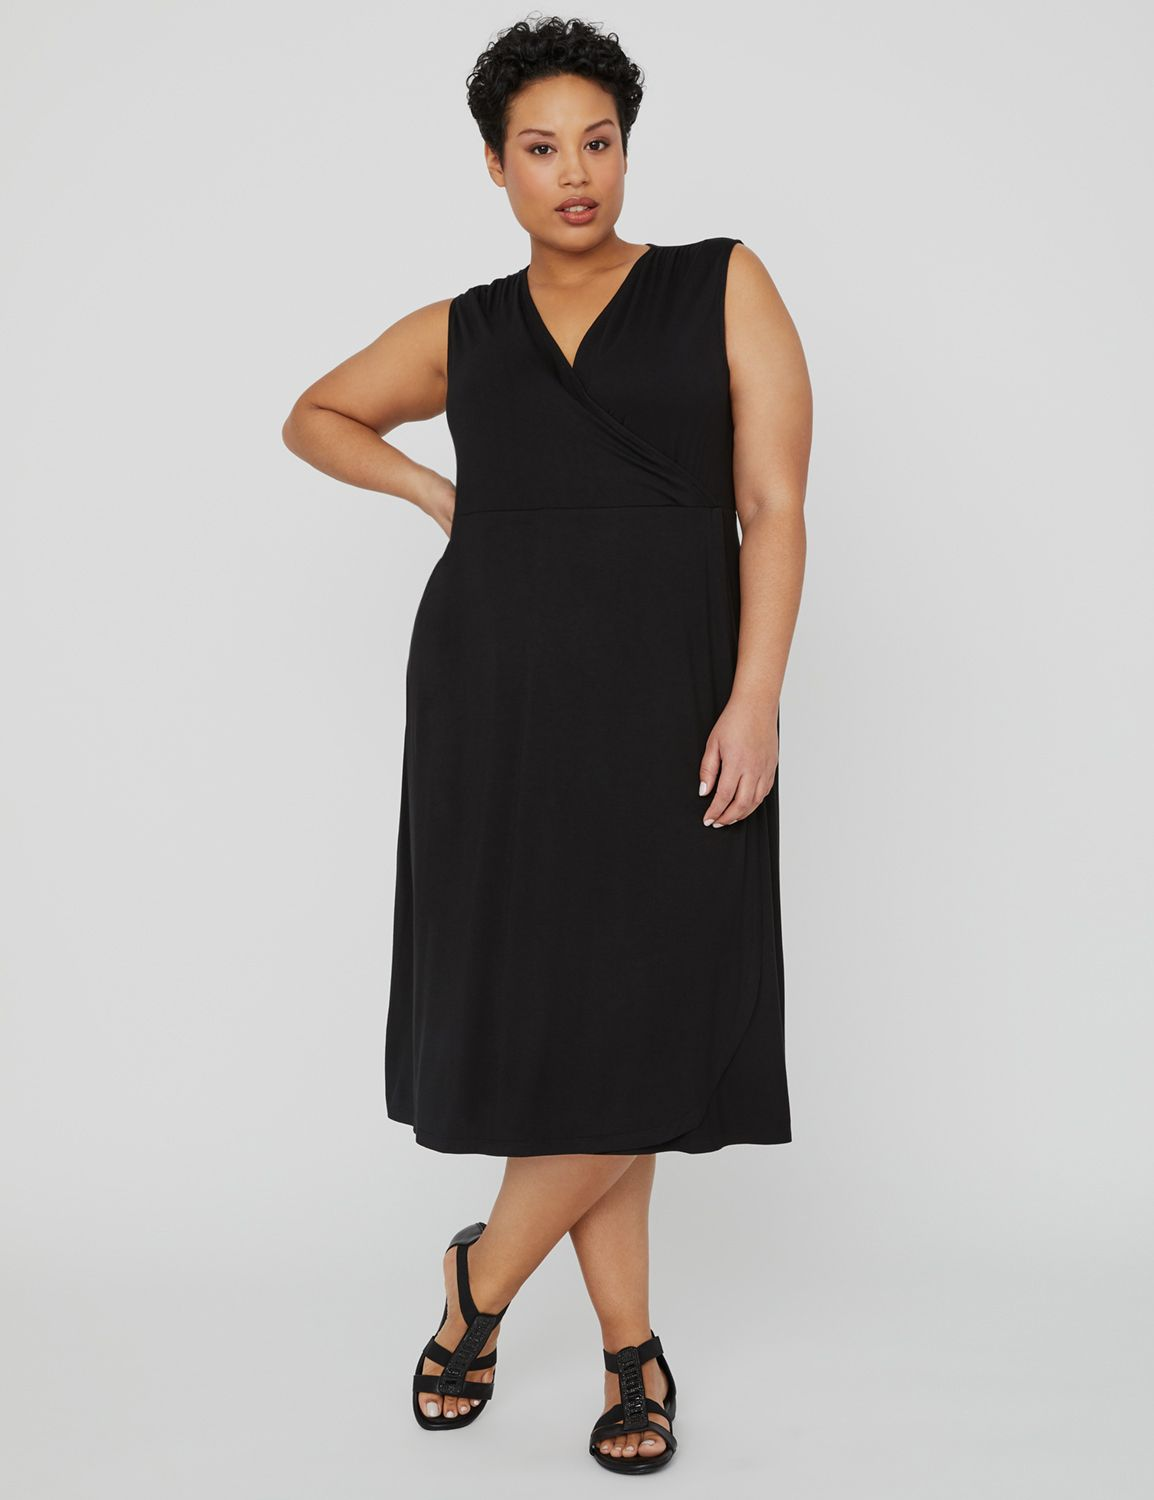 Riverview Wrap Dress 1088151 Vneck Front and Back Maxi E MP-300102446